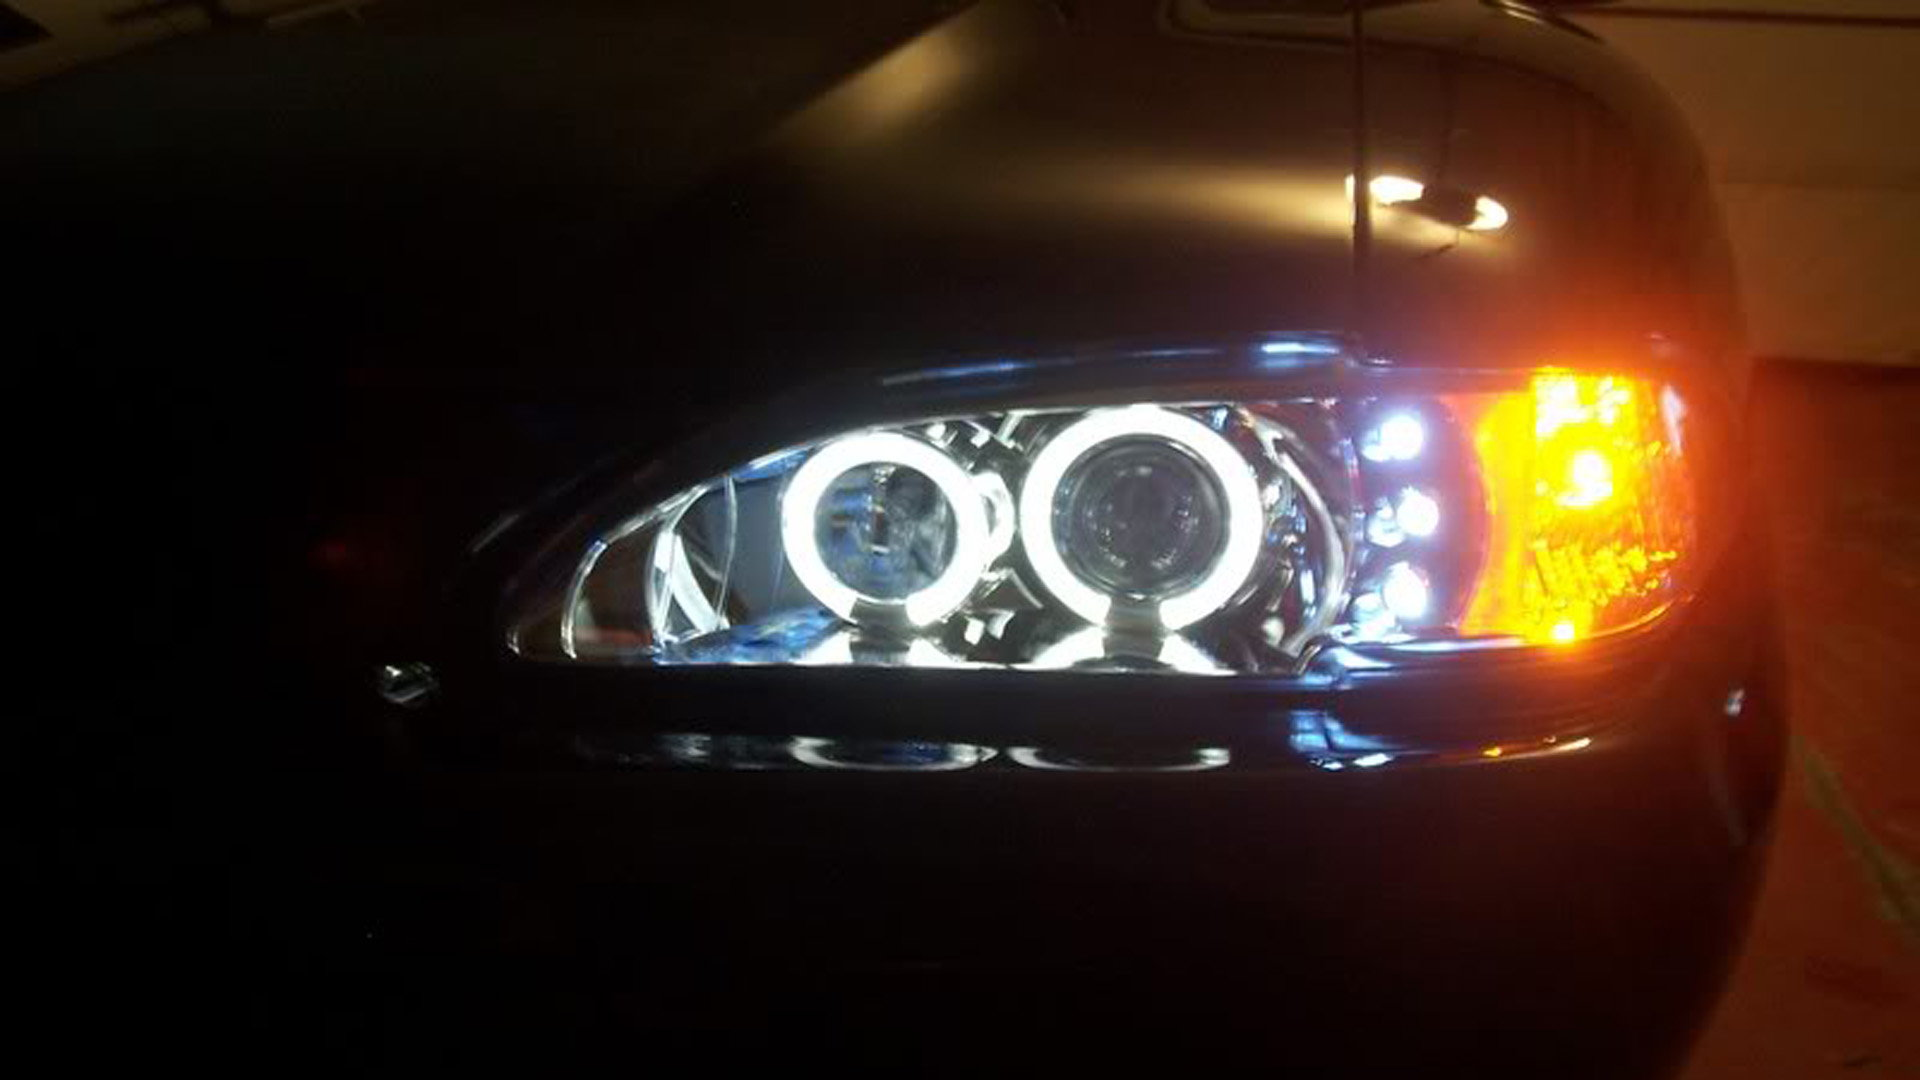 ford mustang v6 and mustang gt 1994 2004 how to install halo headlights mustangforums ford mustang v6 and mustang gt 1994